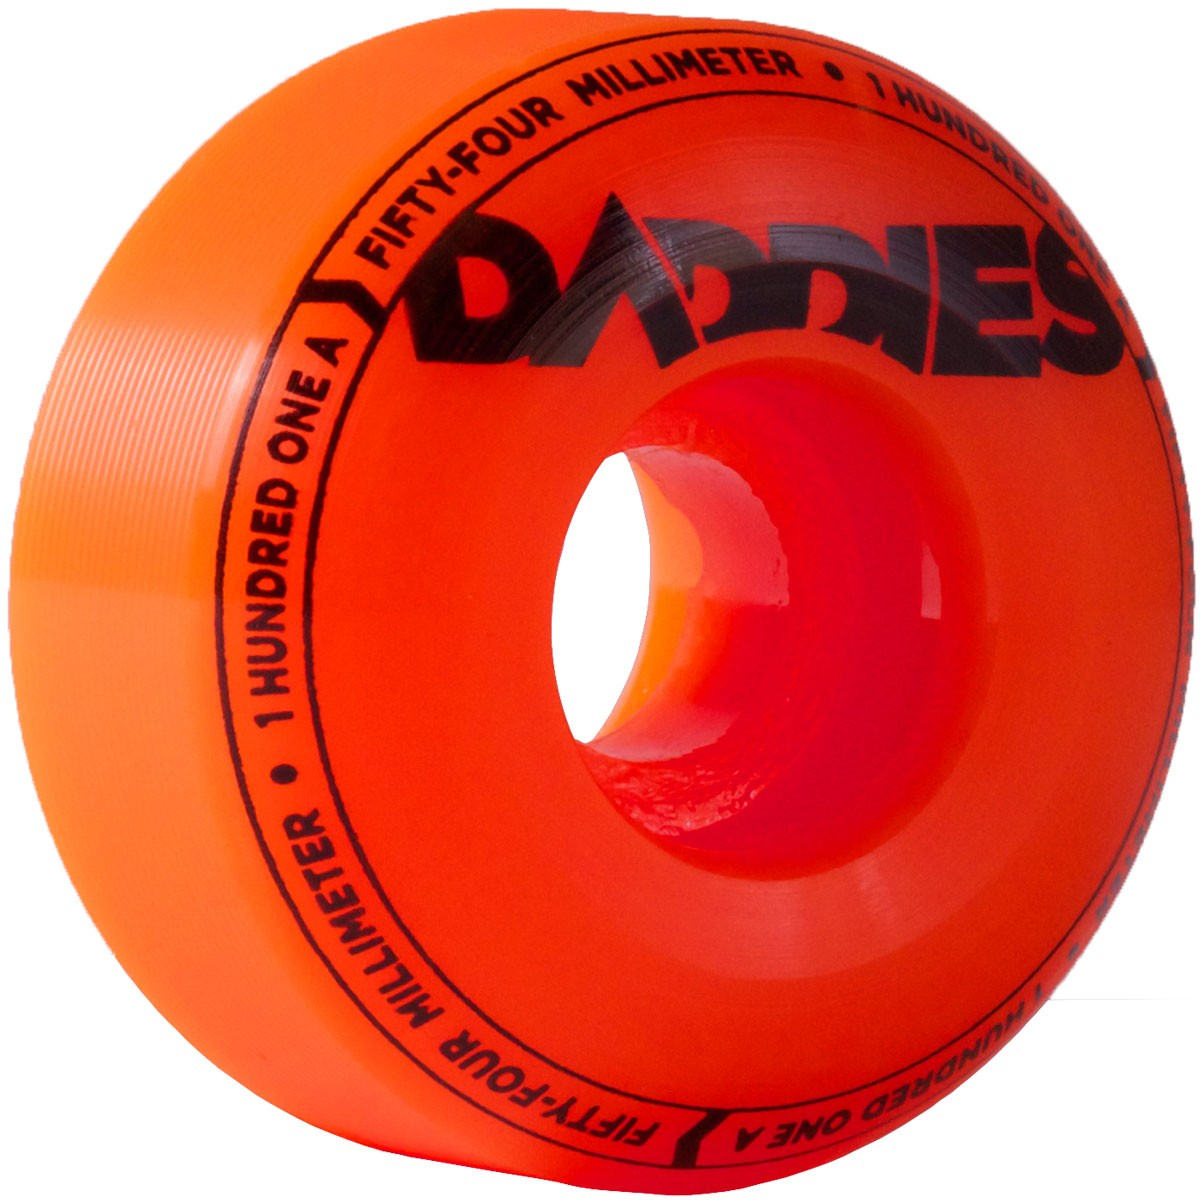 Daddies Board Shop Well Skateboard Wheels 54mm 101a